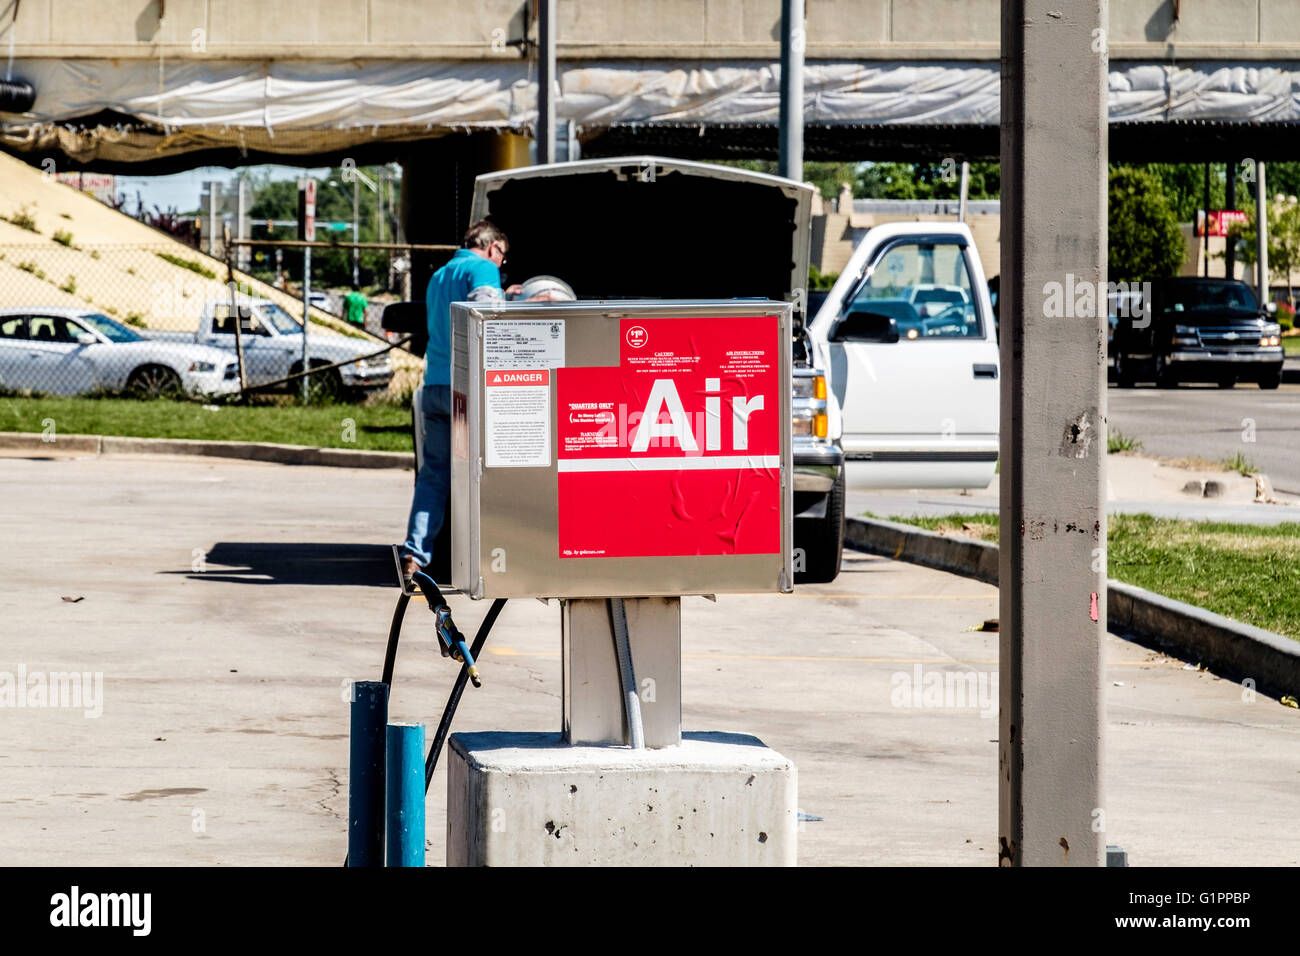 A Coin Operated Air Pump To Air Up Tires In Front Of A Gasoline